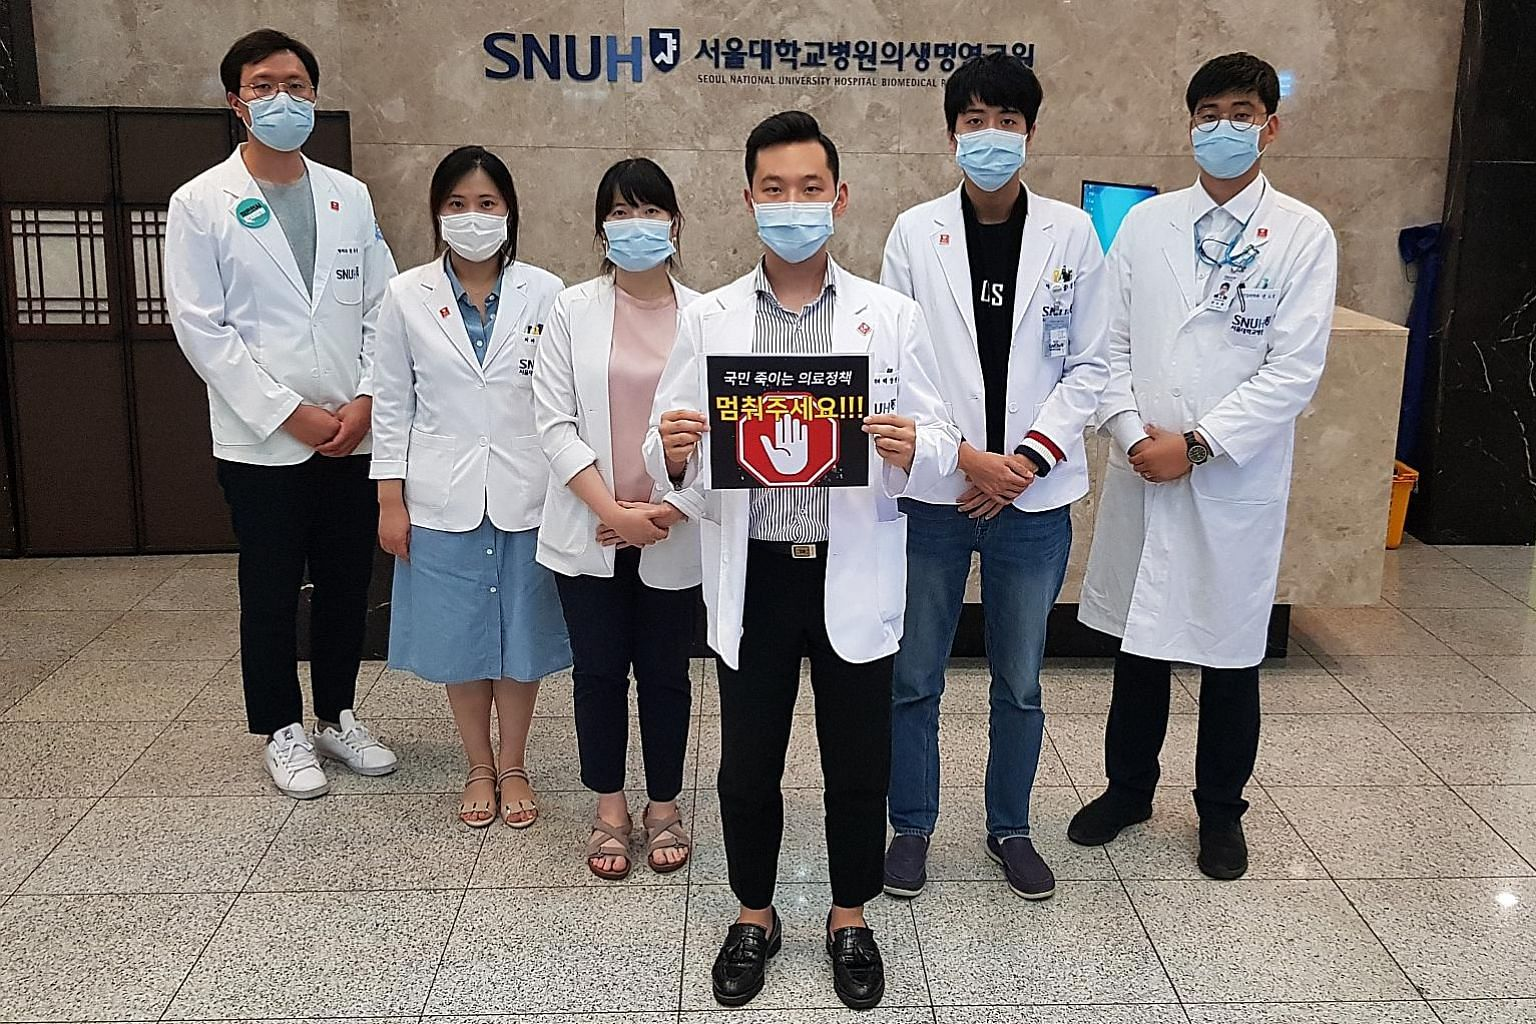 "A group of resident doctors at Seoul National University Hospital who joined a strike against the government's medical reform plan, holding a sign that says ""stop medical policies that kill people"". ST PHOTO: CHANG MAY CHOON"